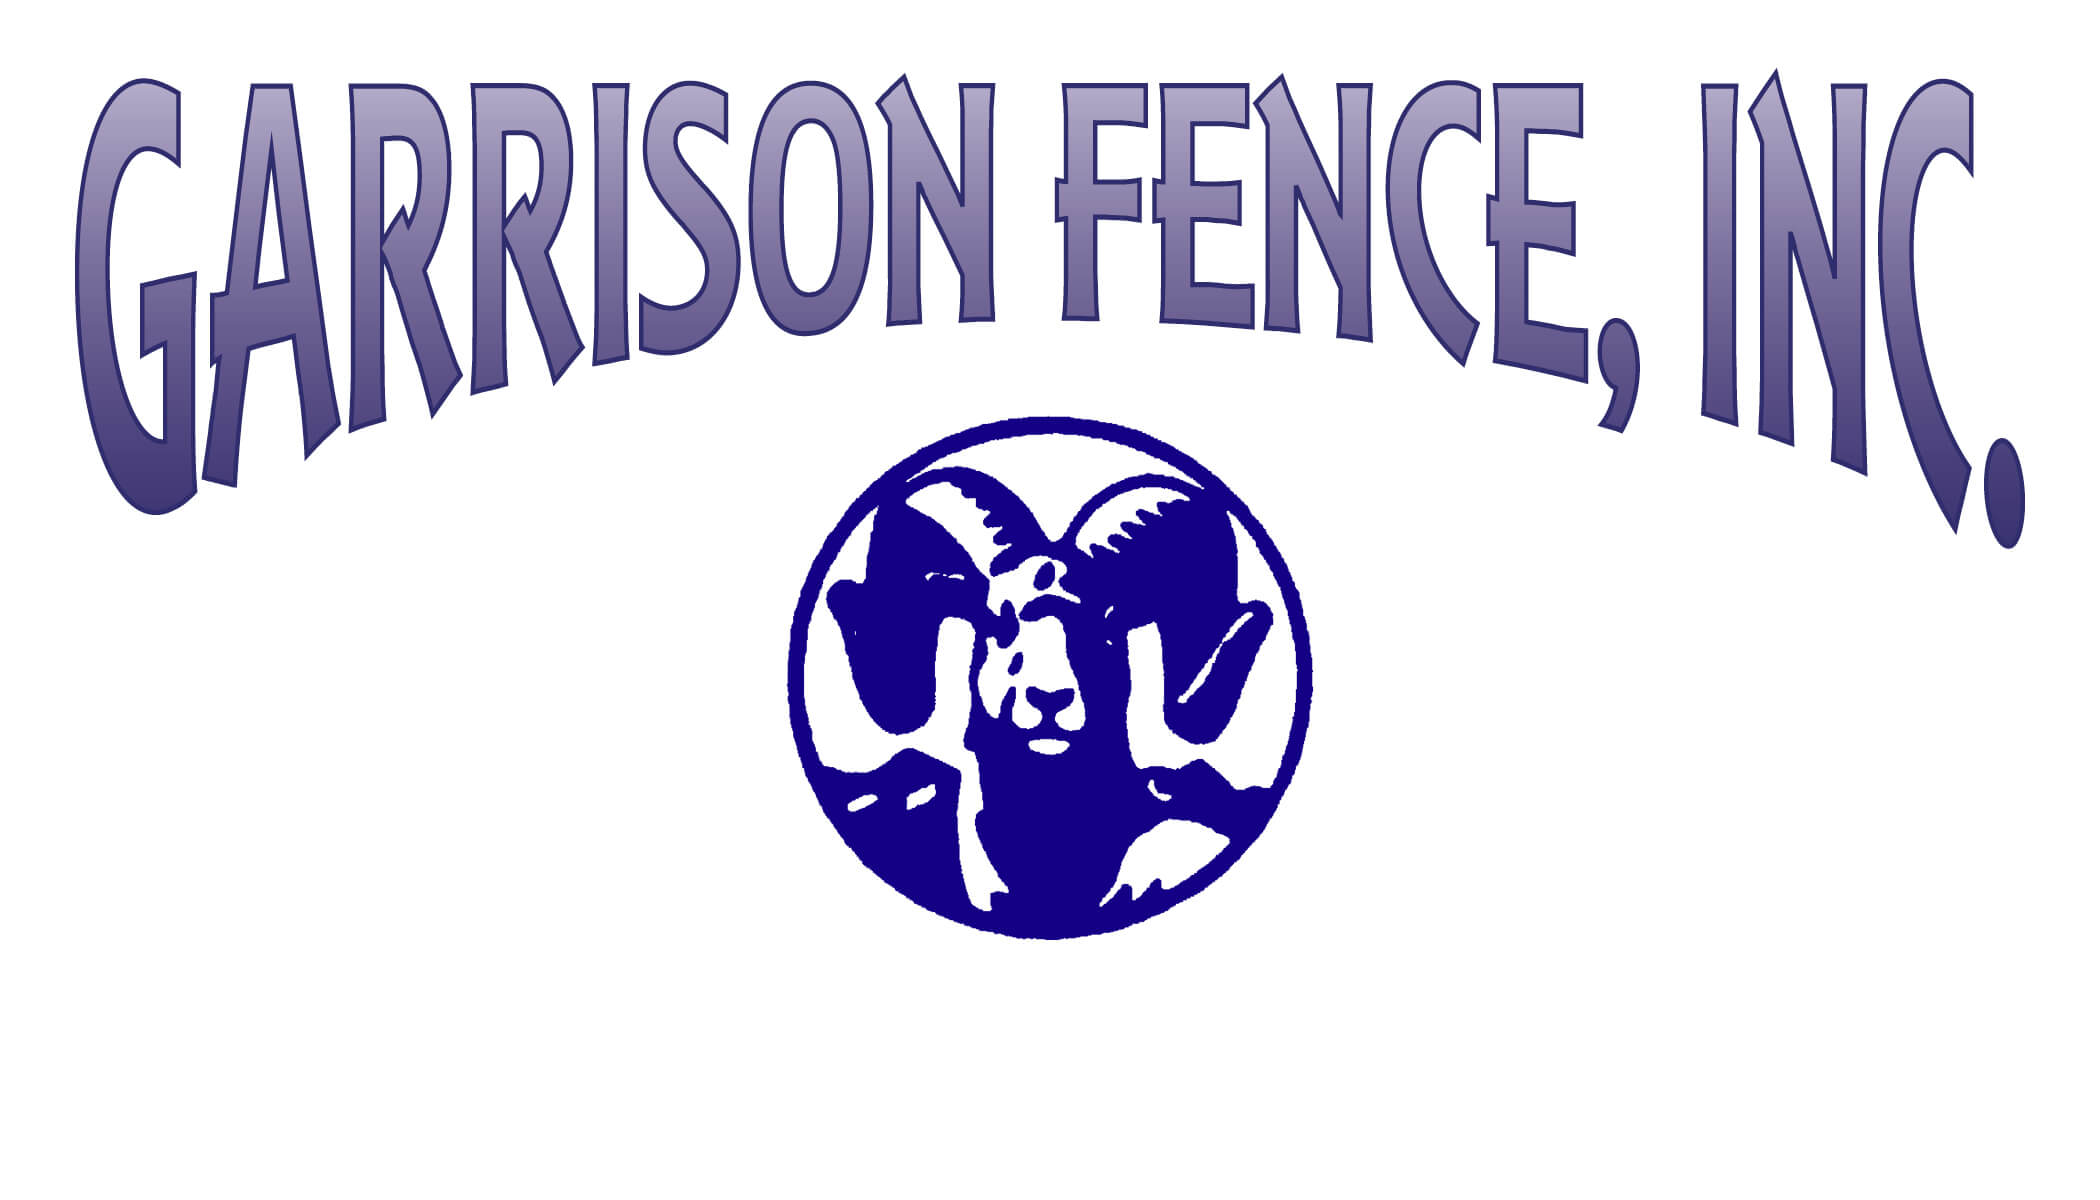 Garrison-Fence-Jade-Communications